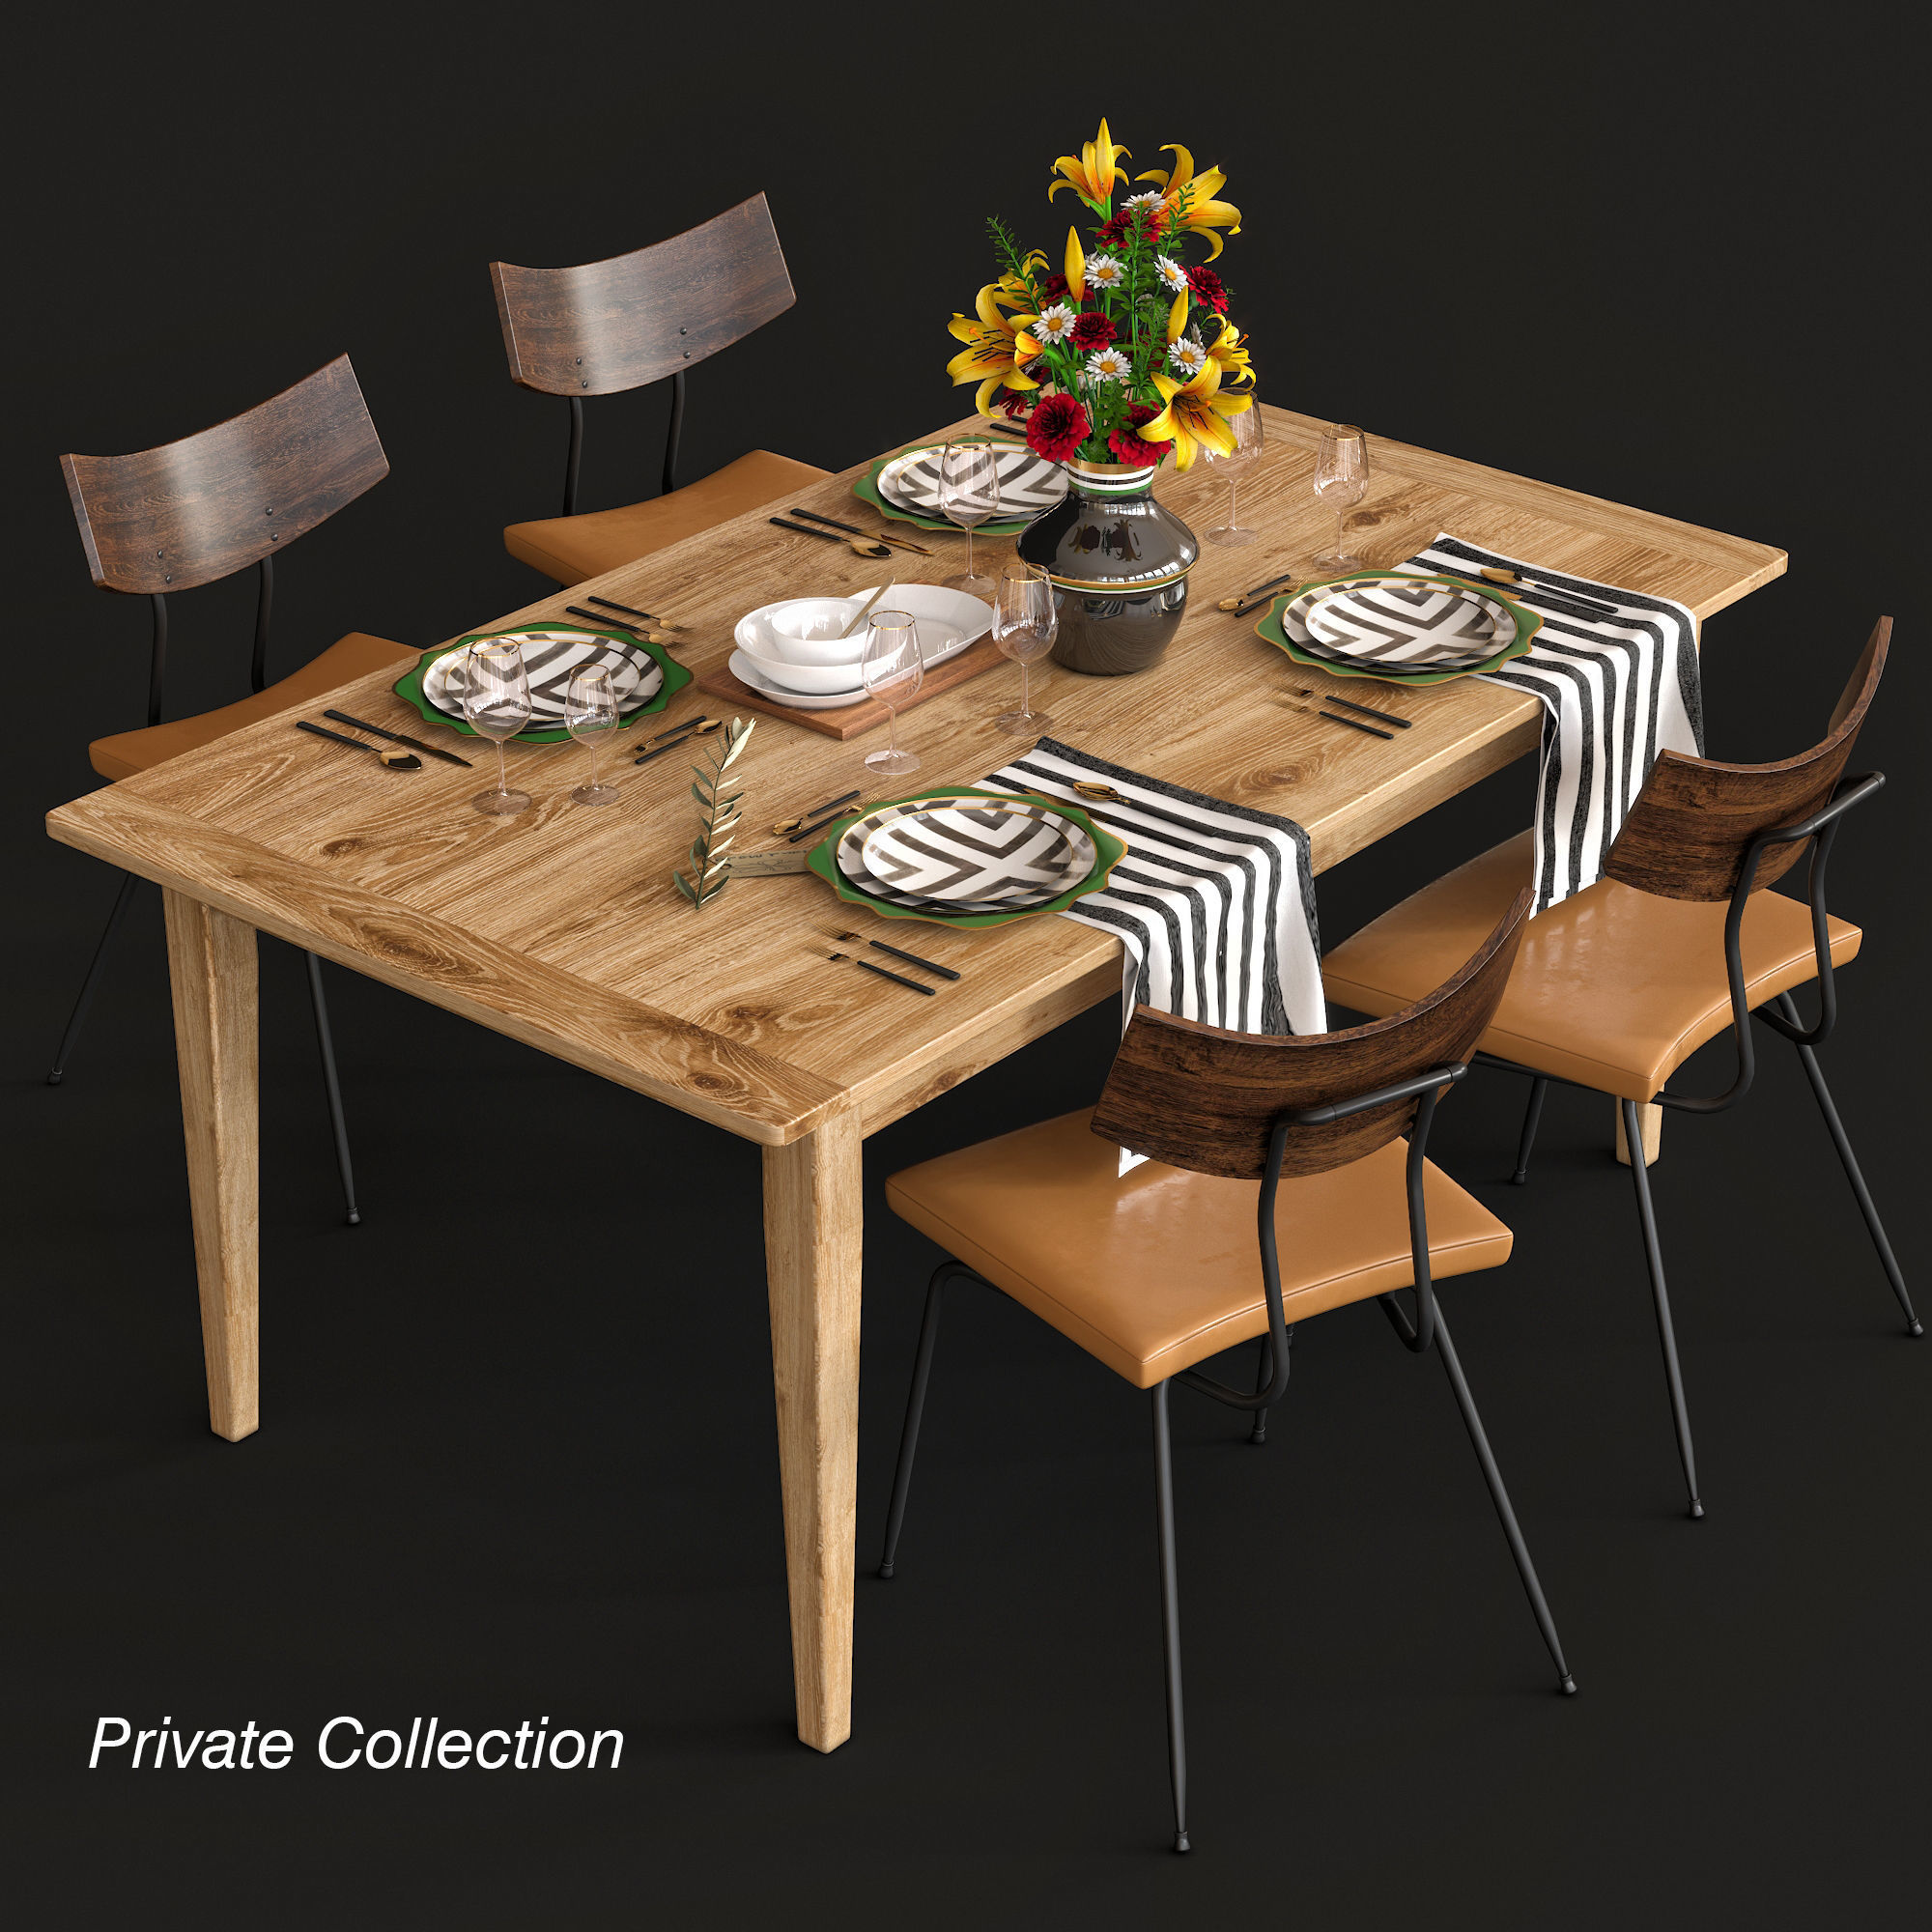 Dining table and chairs and serving